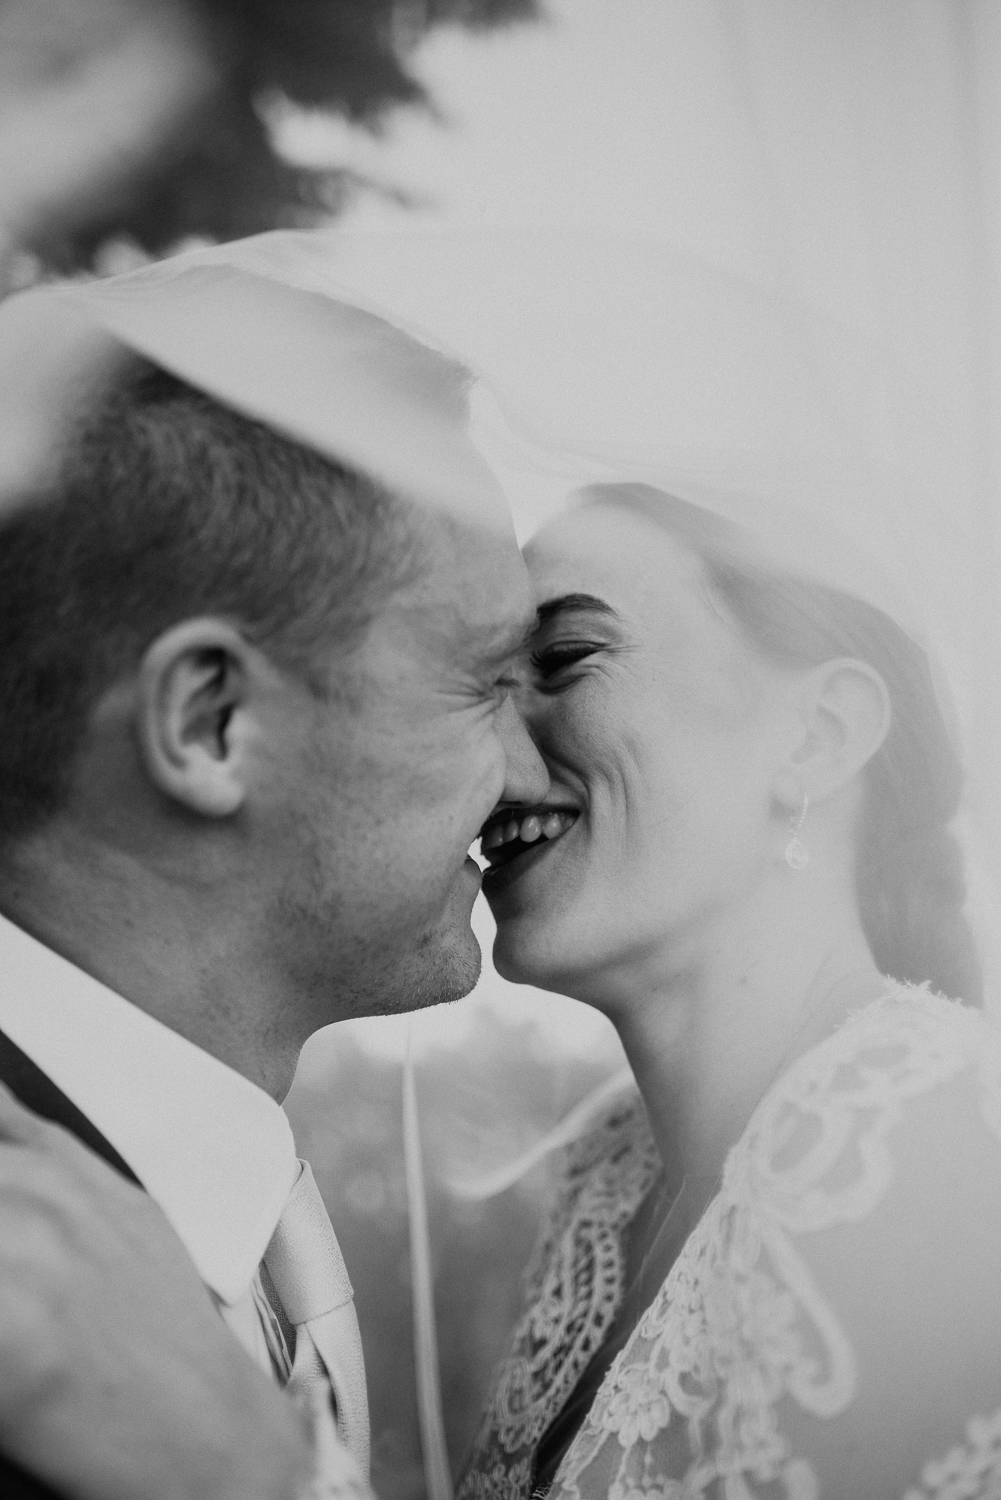 Bride and Groom portrait of a giggly kiss under the veil. These two had an intimate wedding celebration in rural Warwickshire.